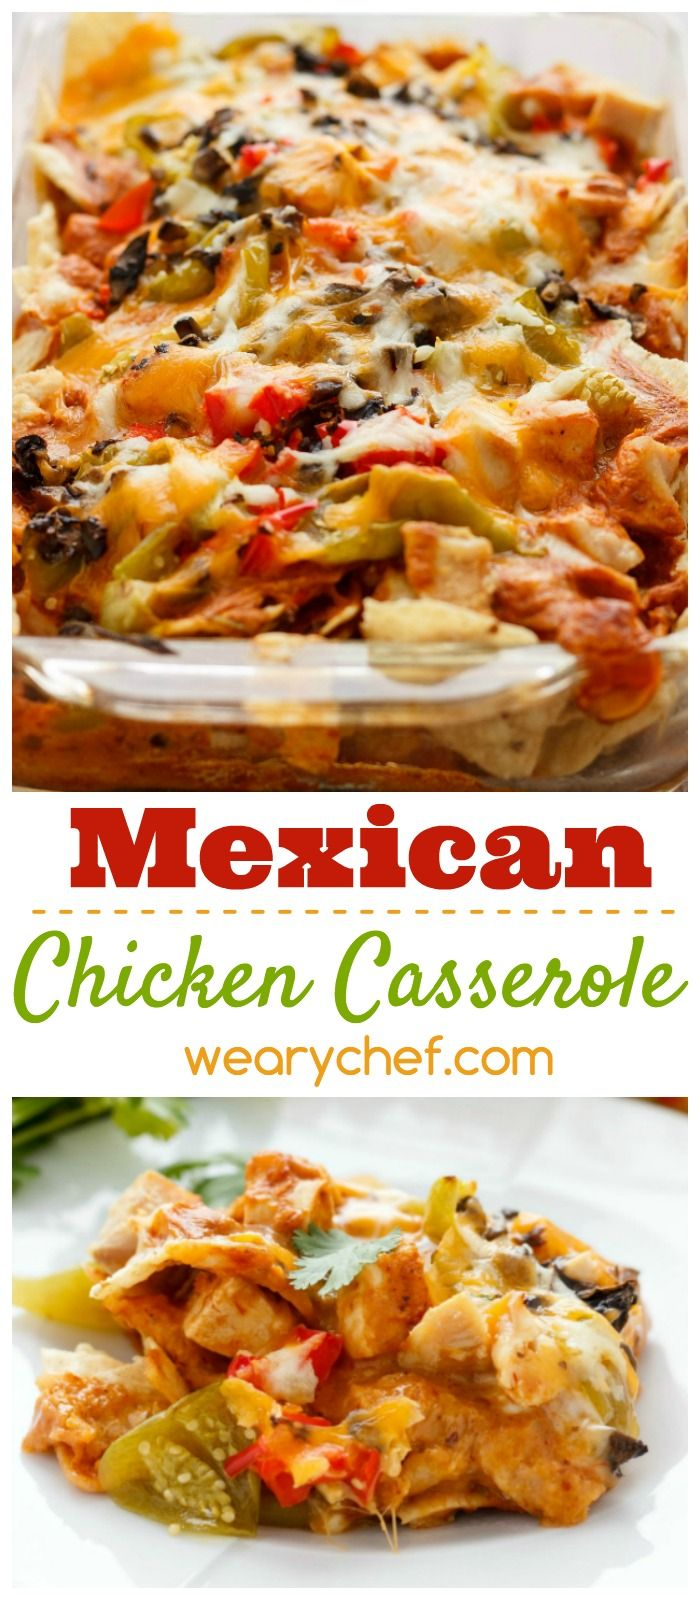 Dive into this Mexican Chicken Casserole loaded with cheese, tomatillos, and tortilla chips!